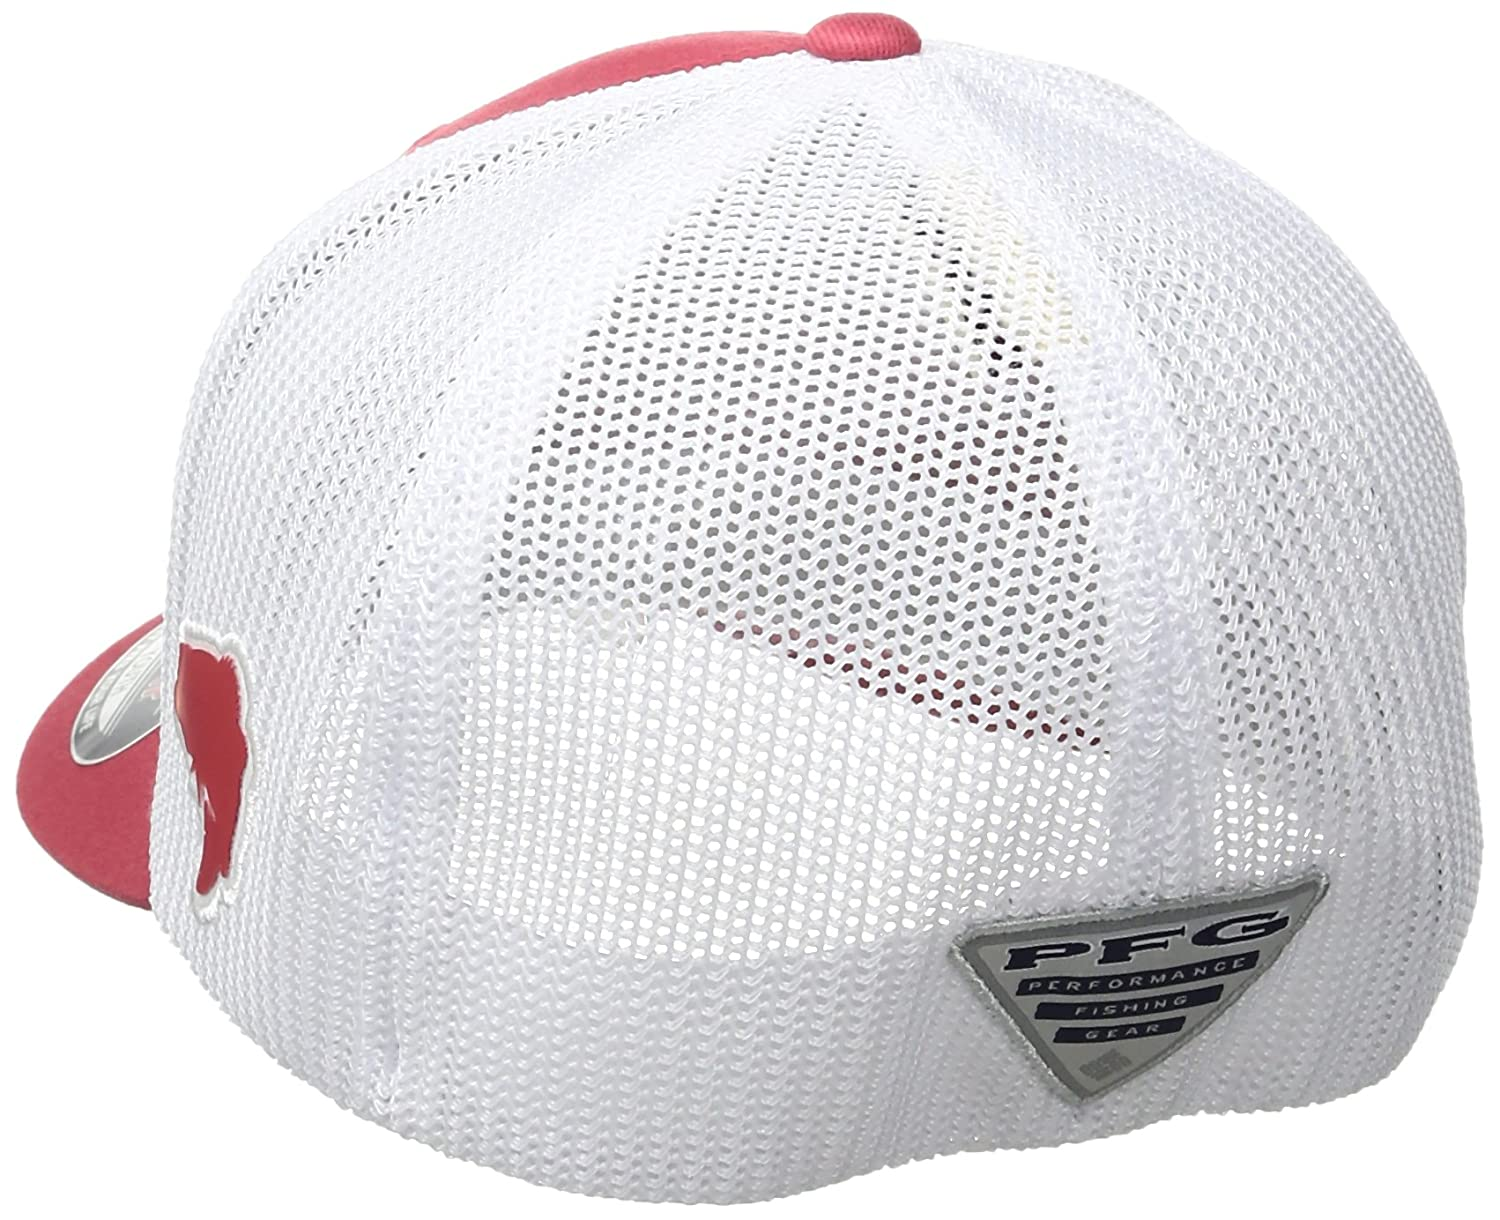 Columbia Junior Mesh Ball Cap Lollipop  Marlin One Size Columbia  (Sporting  Goods ) 1506981 62e98dc06fc